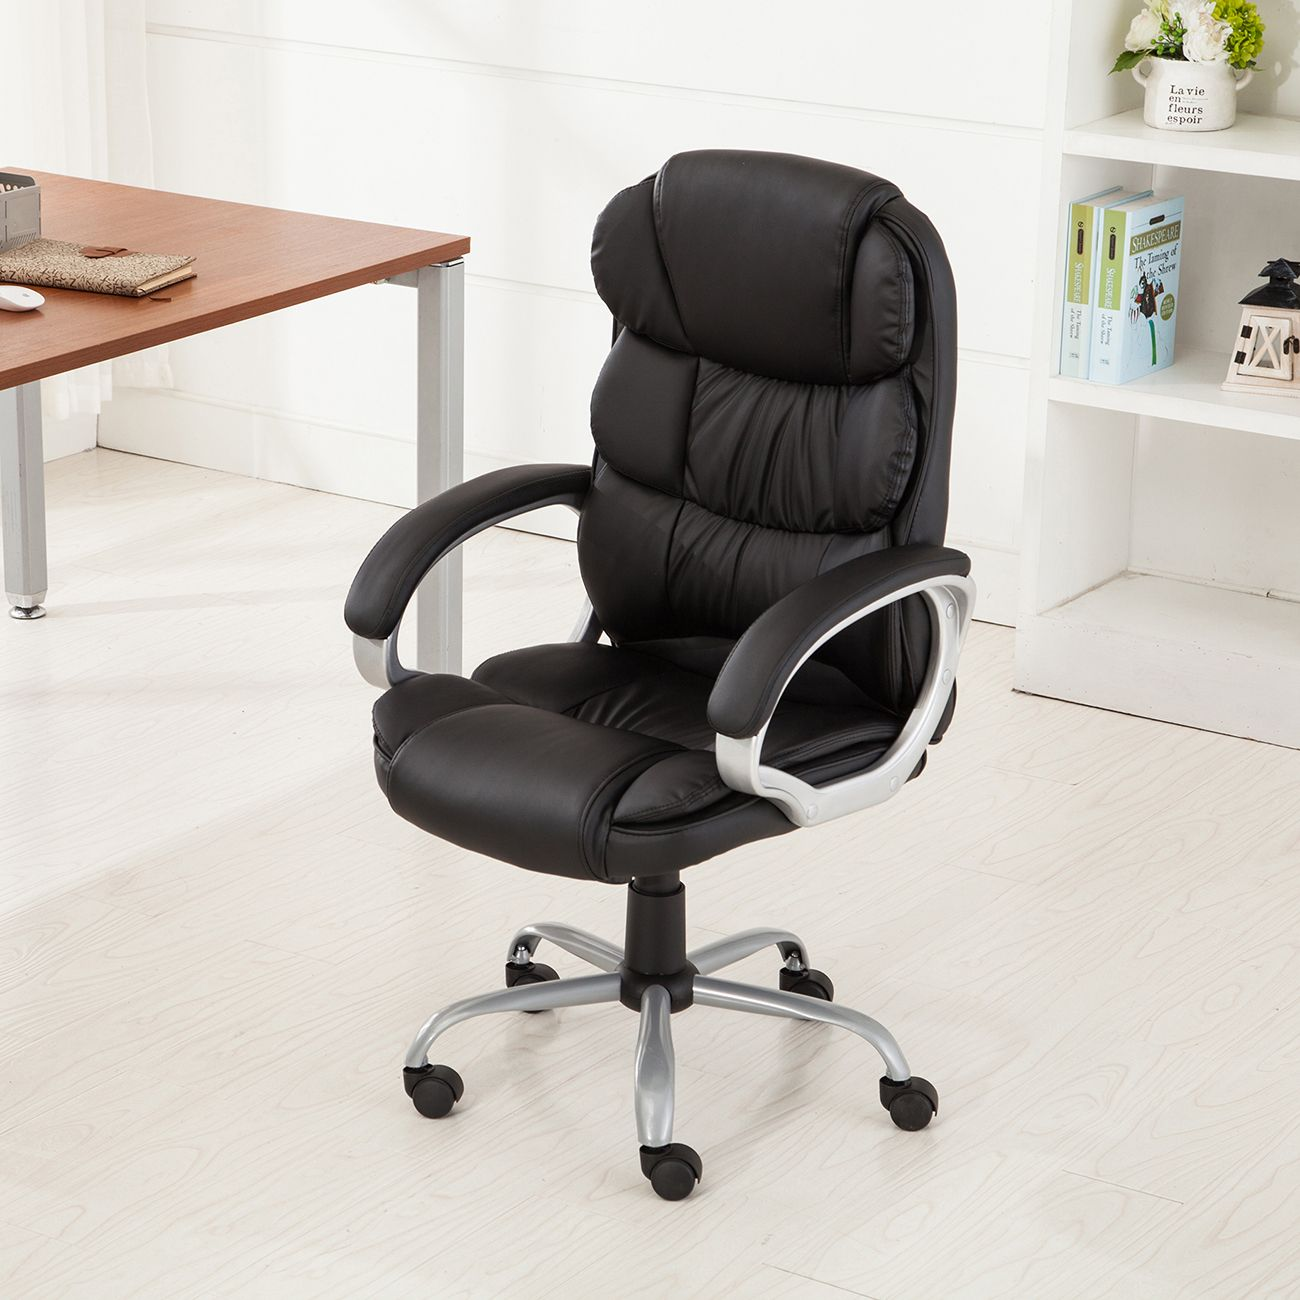 Best Executive Office Chair Stühle, Office und Leder